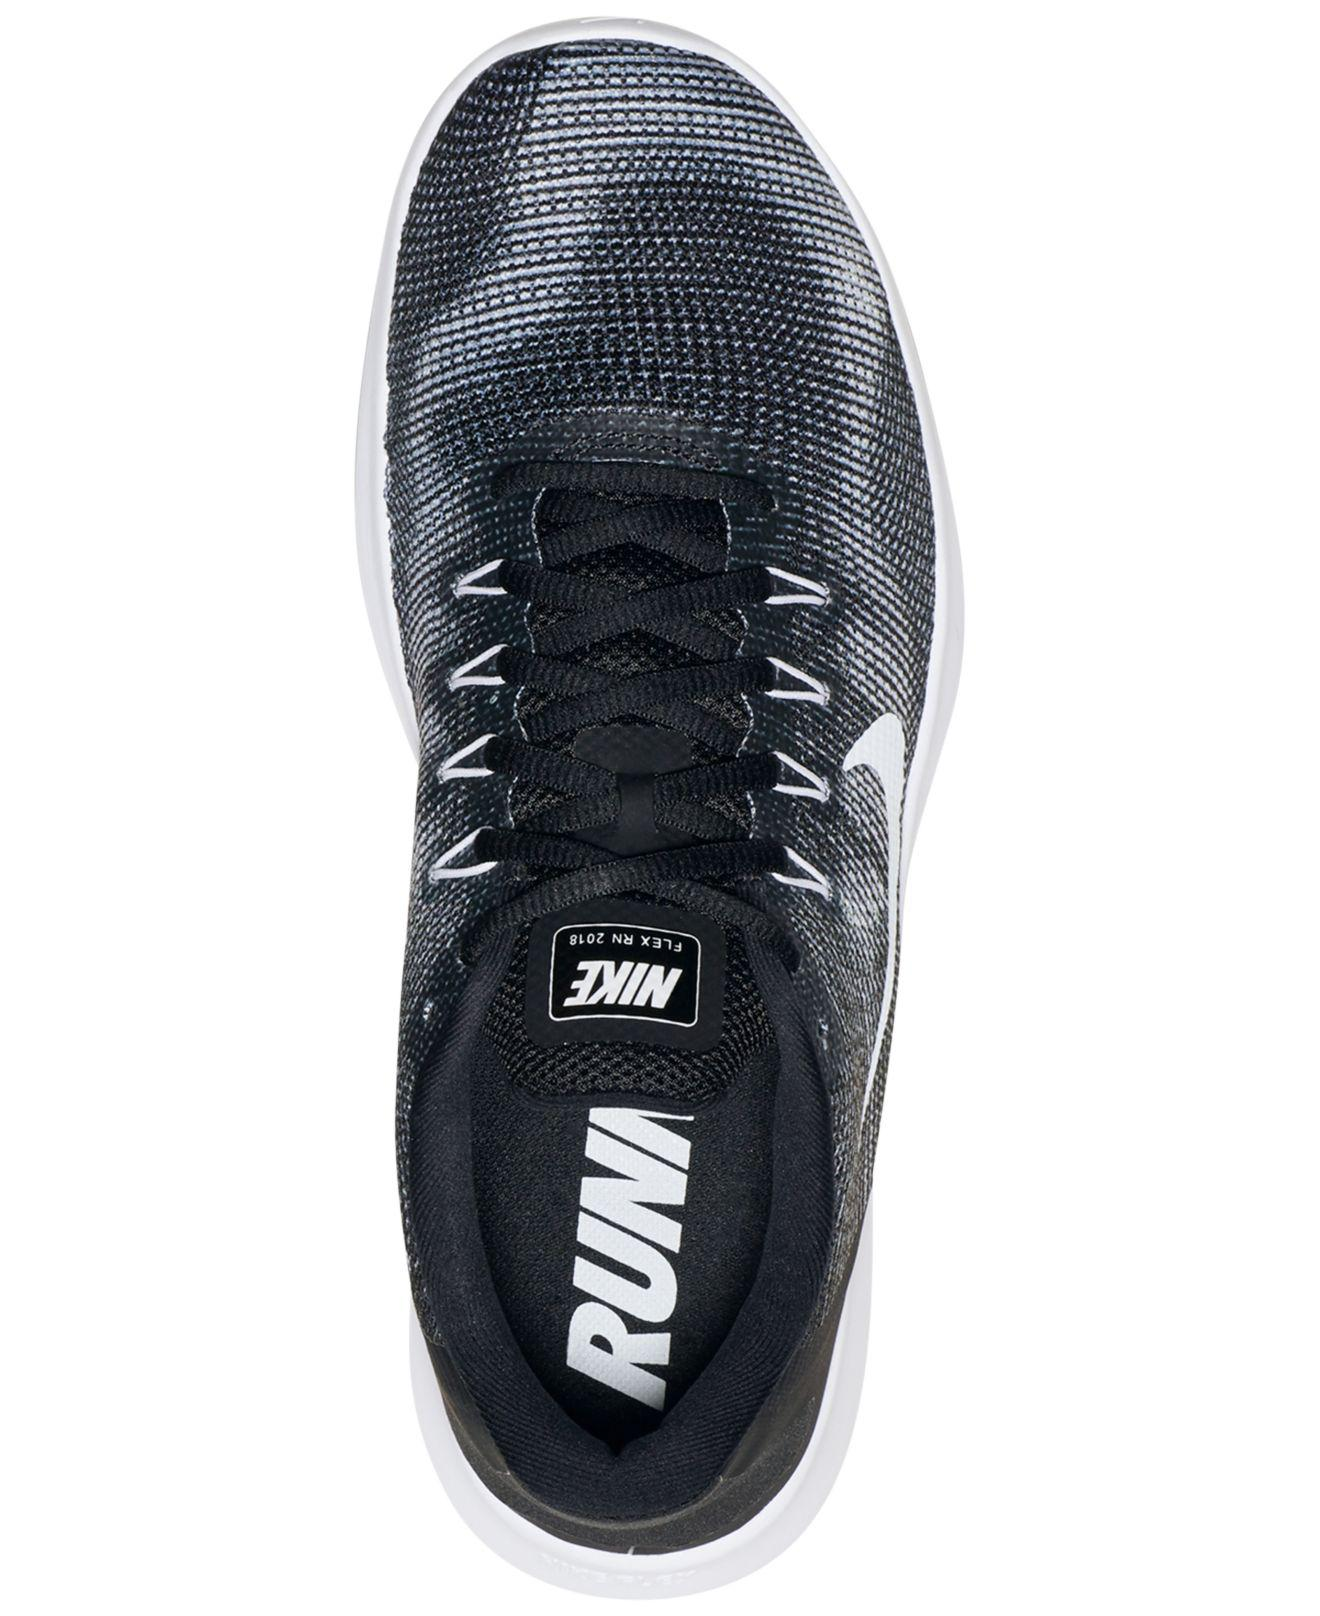 online store 6672f 50b74 Nike Flex Run 2018 Running Sneakers From Finish Line in Black for Men -  Save 51% - Lyst